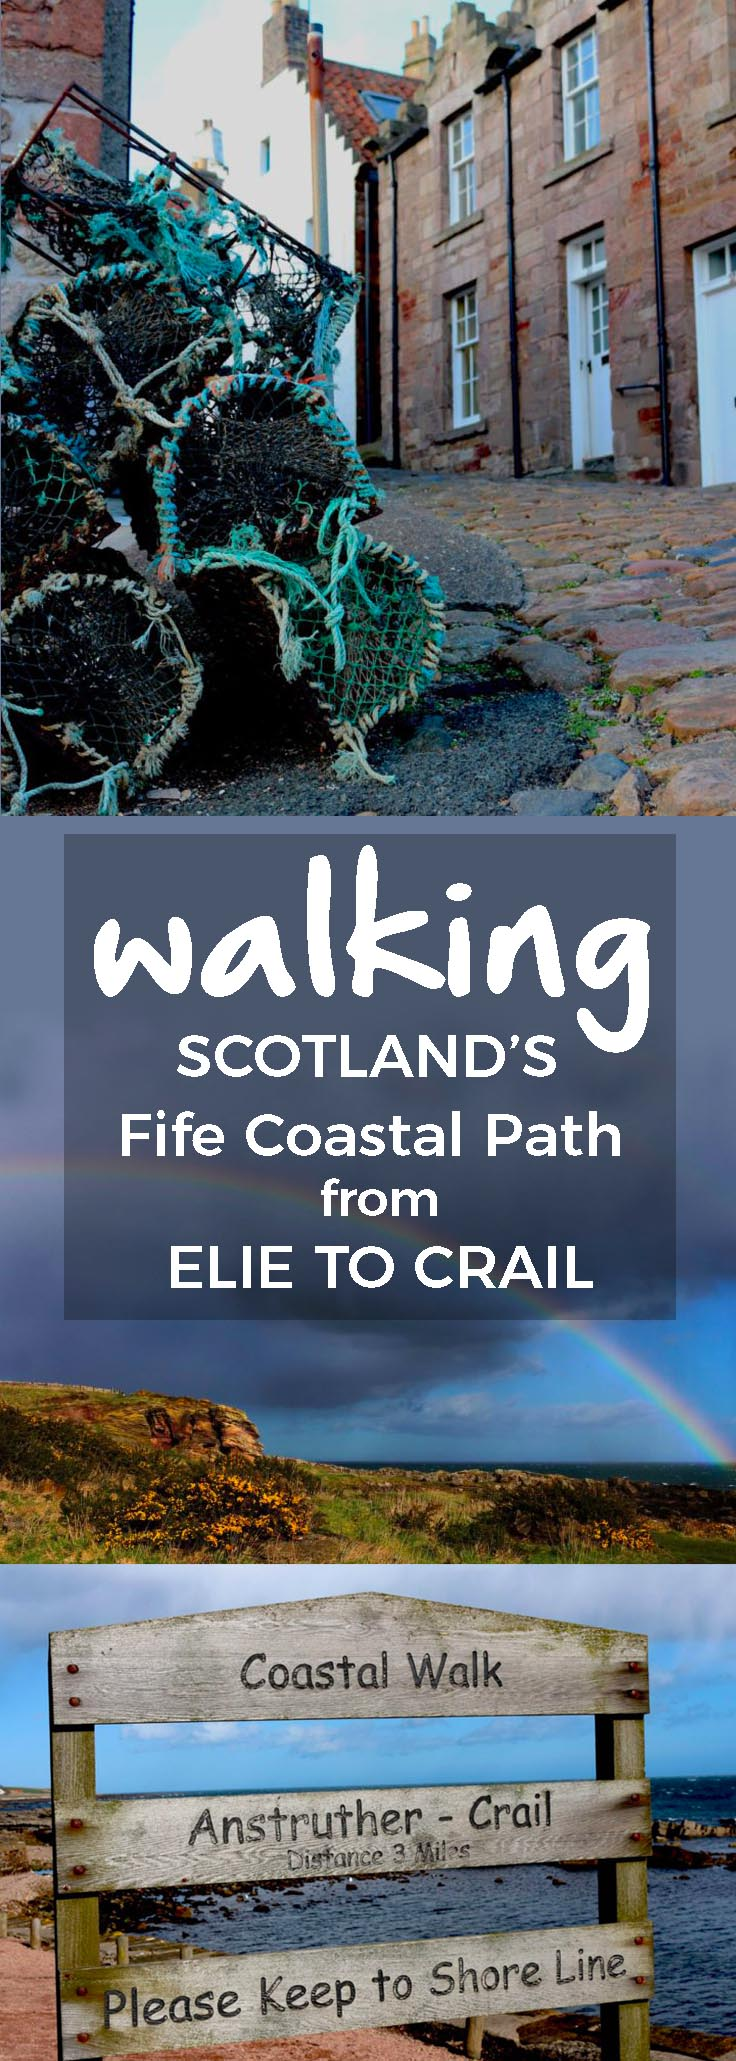 The Fife Coastal Path starts north of Edinburgh at the Firth of Forth and ends at the Firth of Tay. You can walk the entire 117 mile distance or just stroll a small portion. - theweekendguide.com